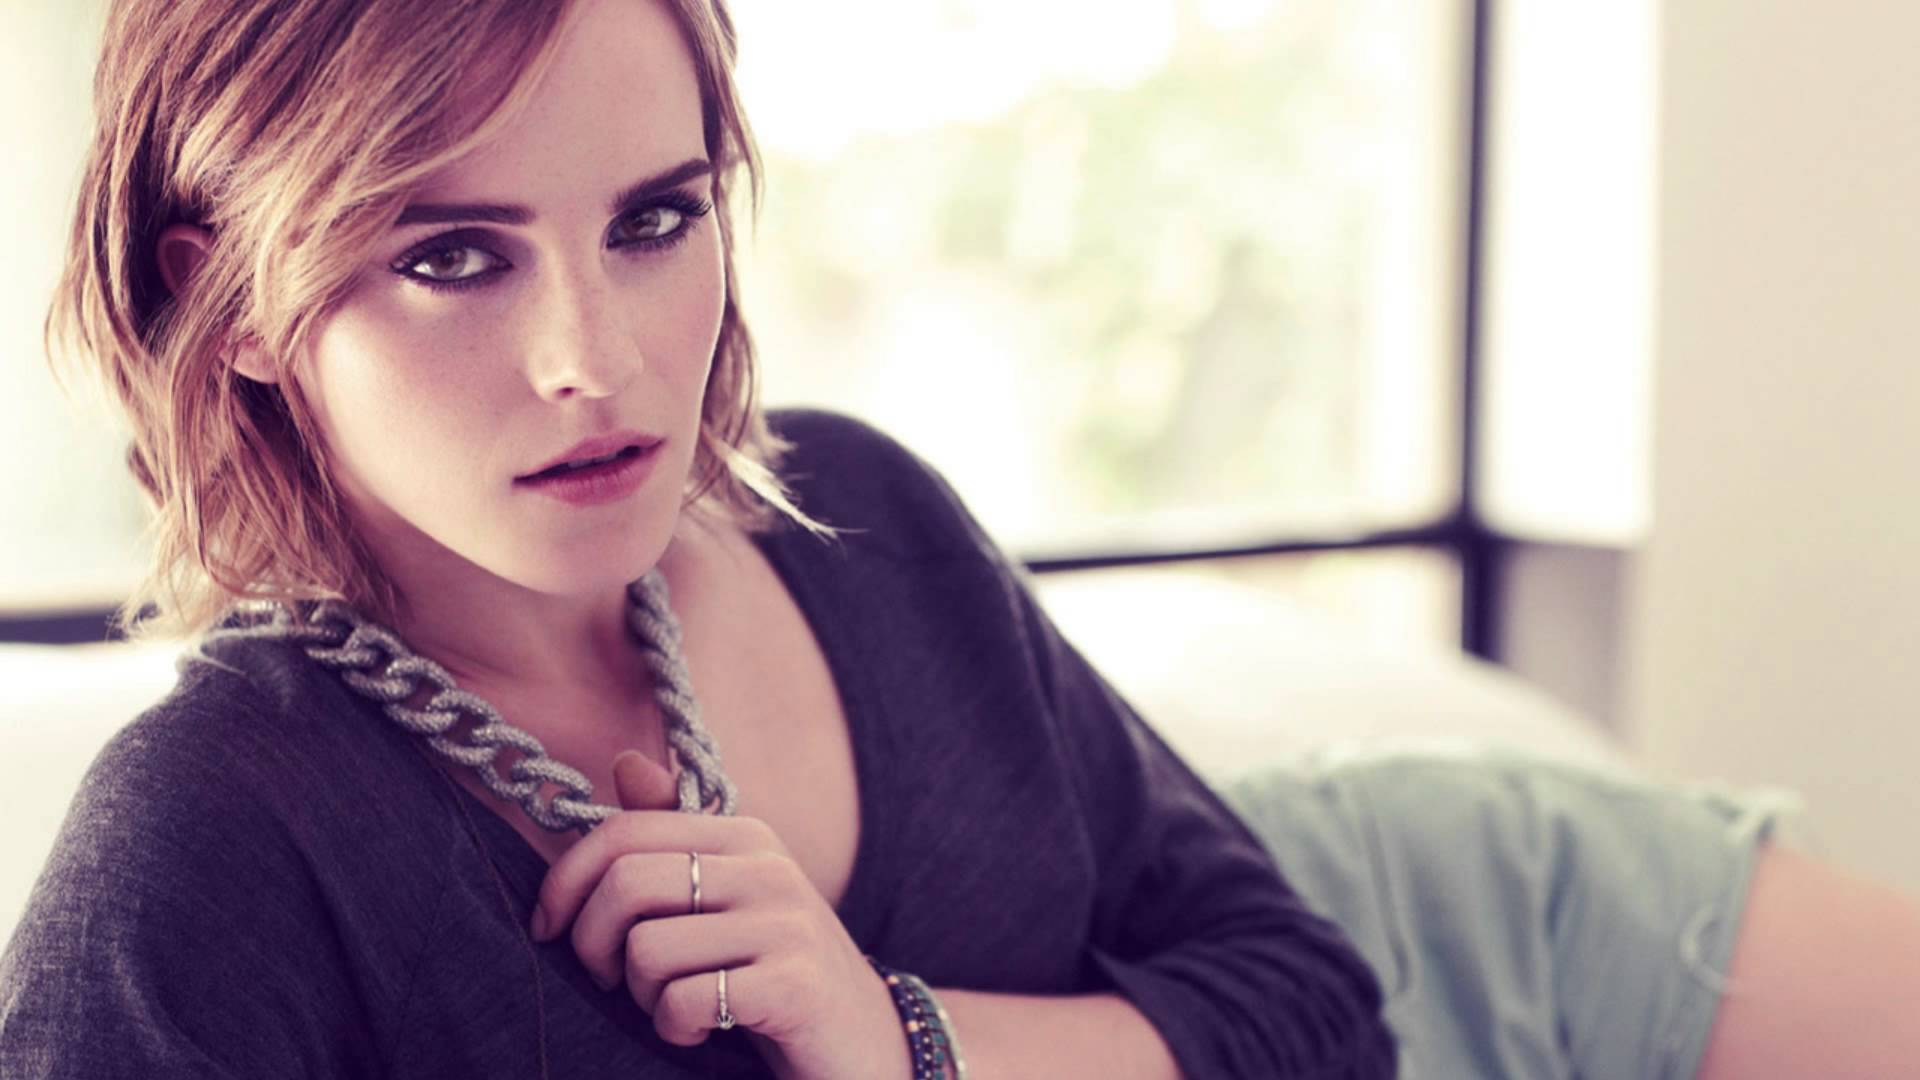 Emma Watson Wide High Quality Wallpapers in jpg format for free